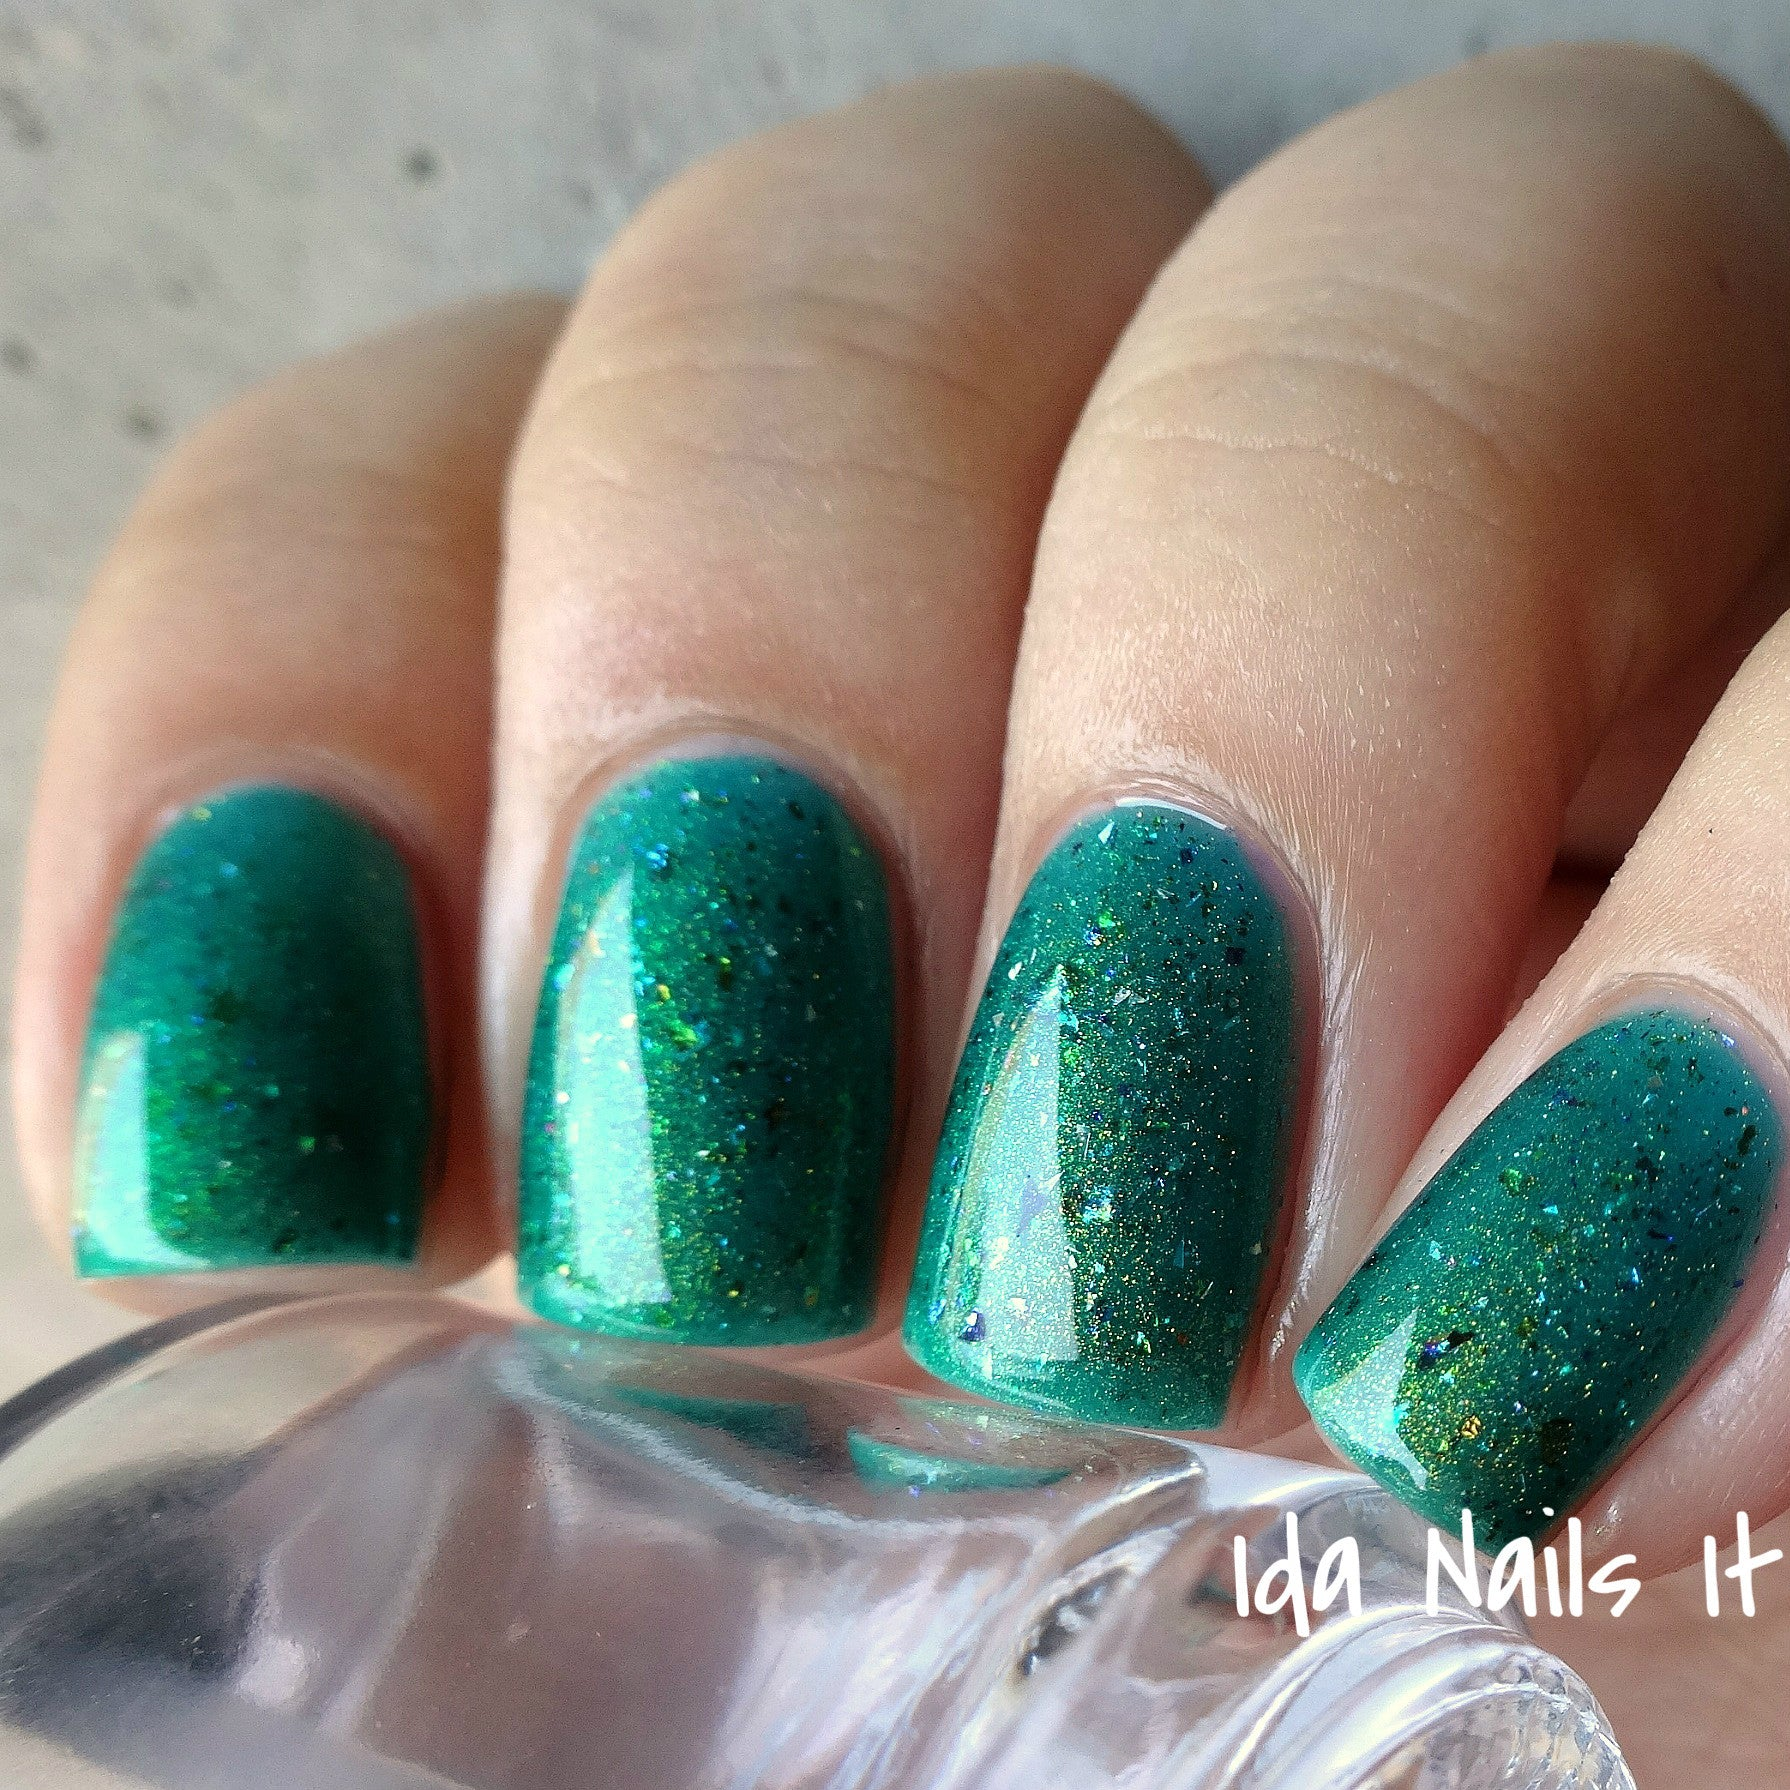 Quixotica - Teal Jelly w/ Rainbow Flakies, Holo Micro Shards and ...